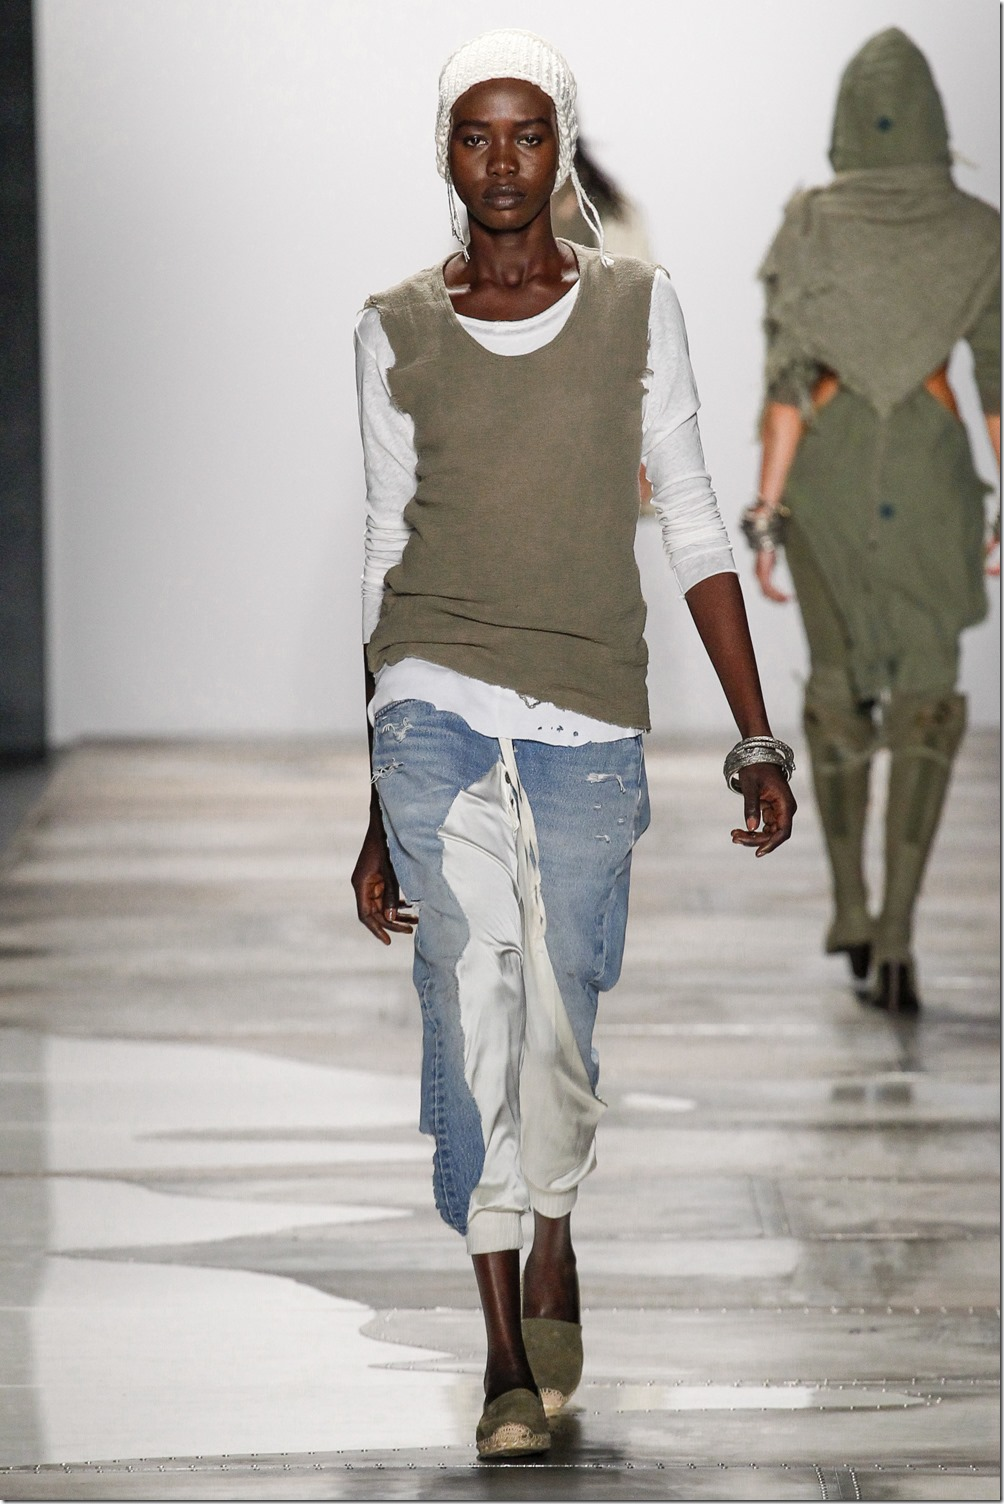 greg lauren menswear